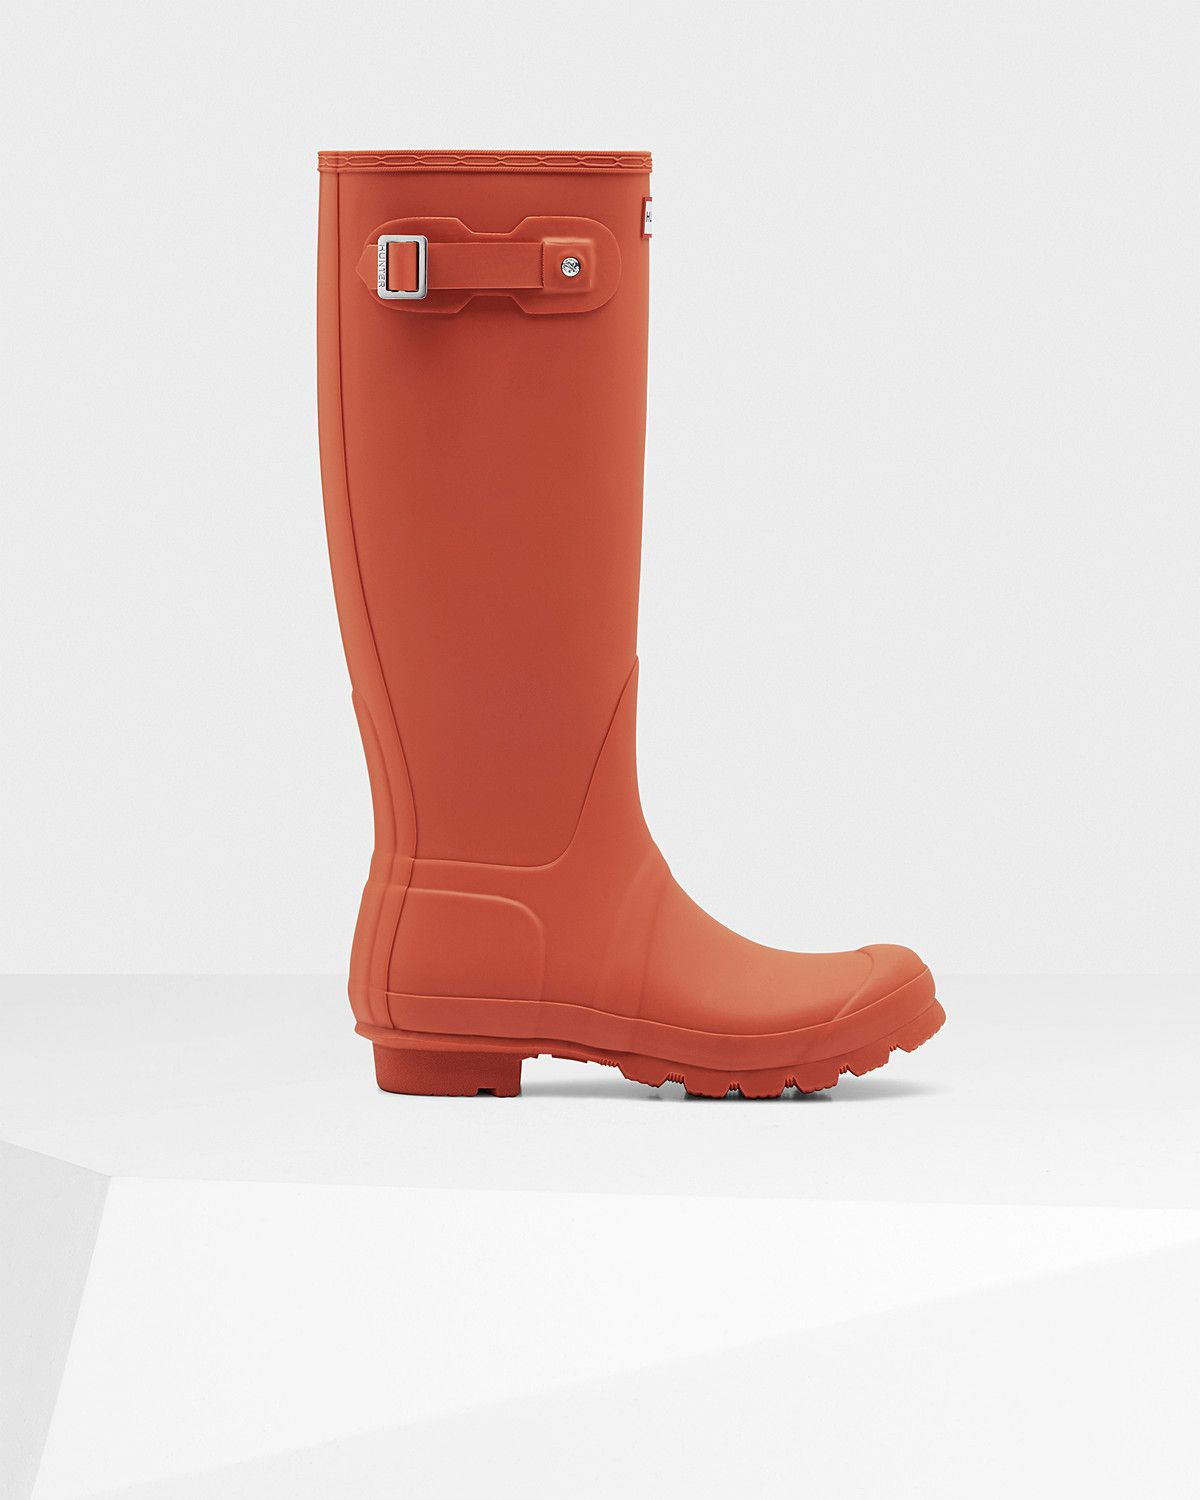 Womens Red Tall Rain Boots | Official US Hunter Boots Store ...